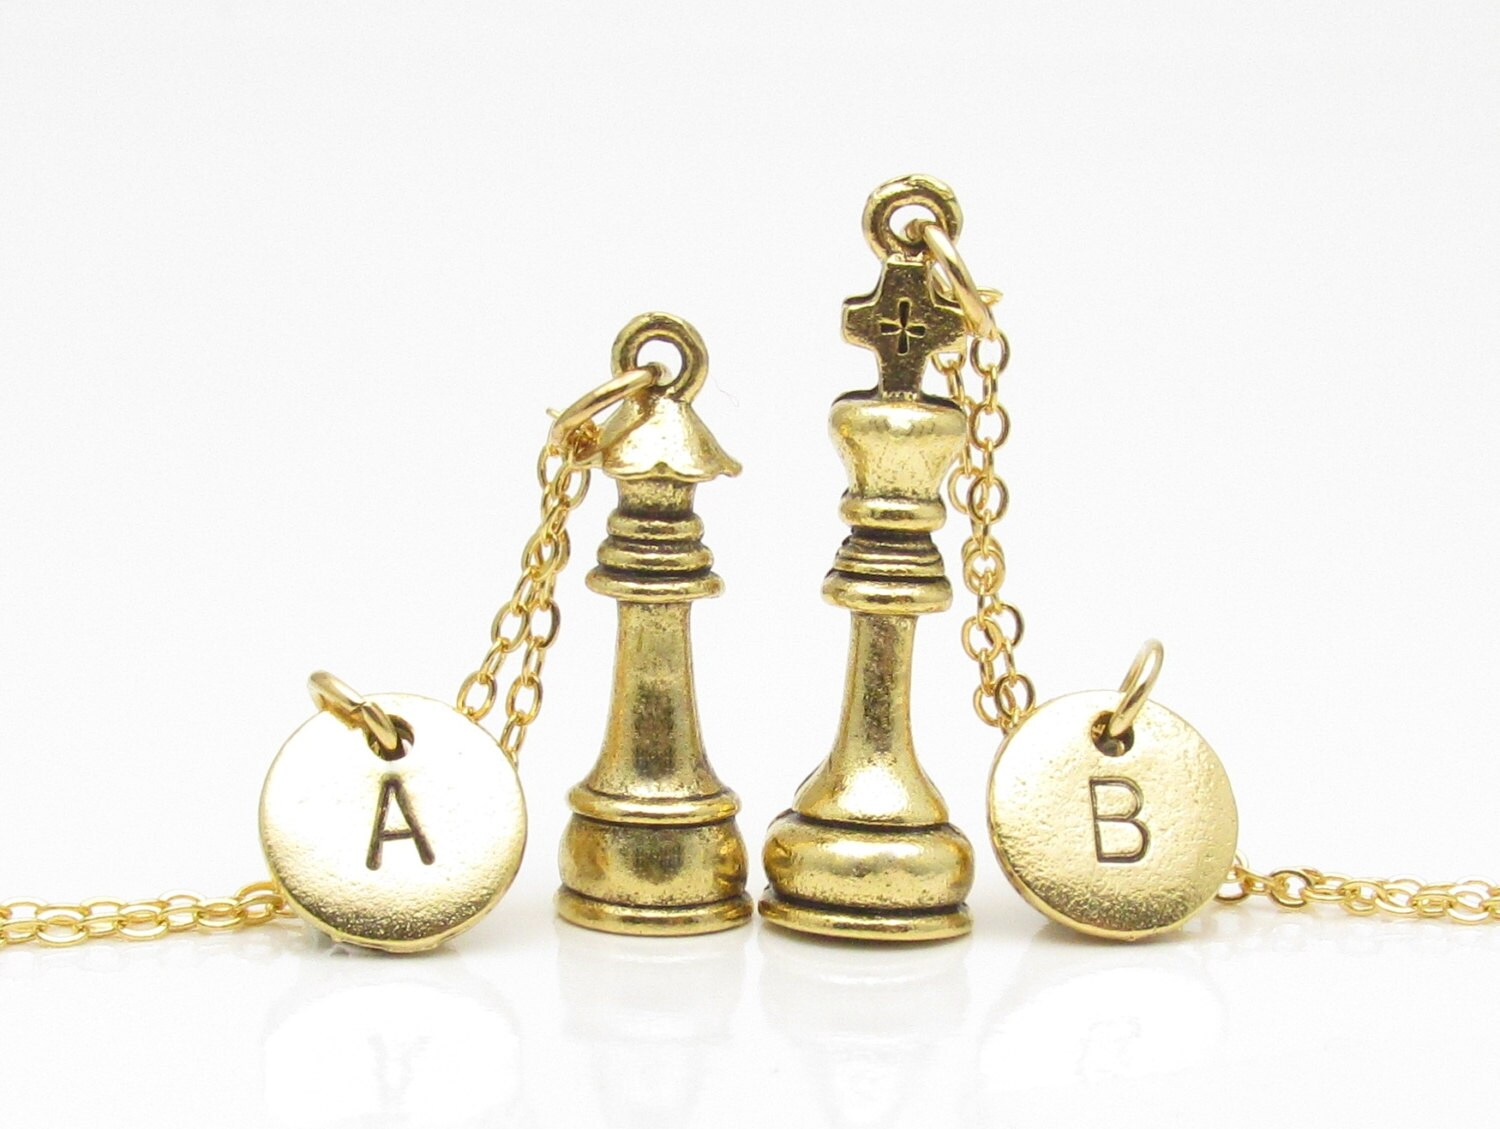 Gold Chess Pieces Chess Necklaces Gold King And Queen Chess Pieces His And Hers